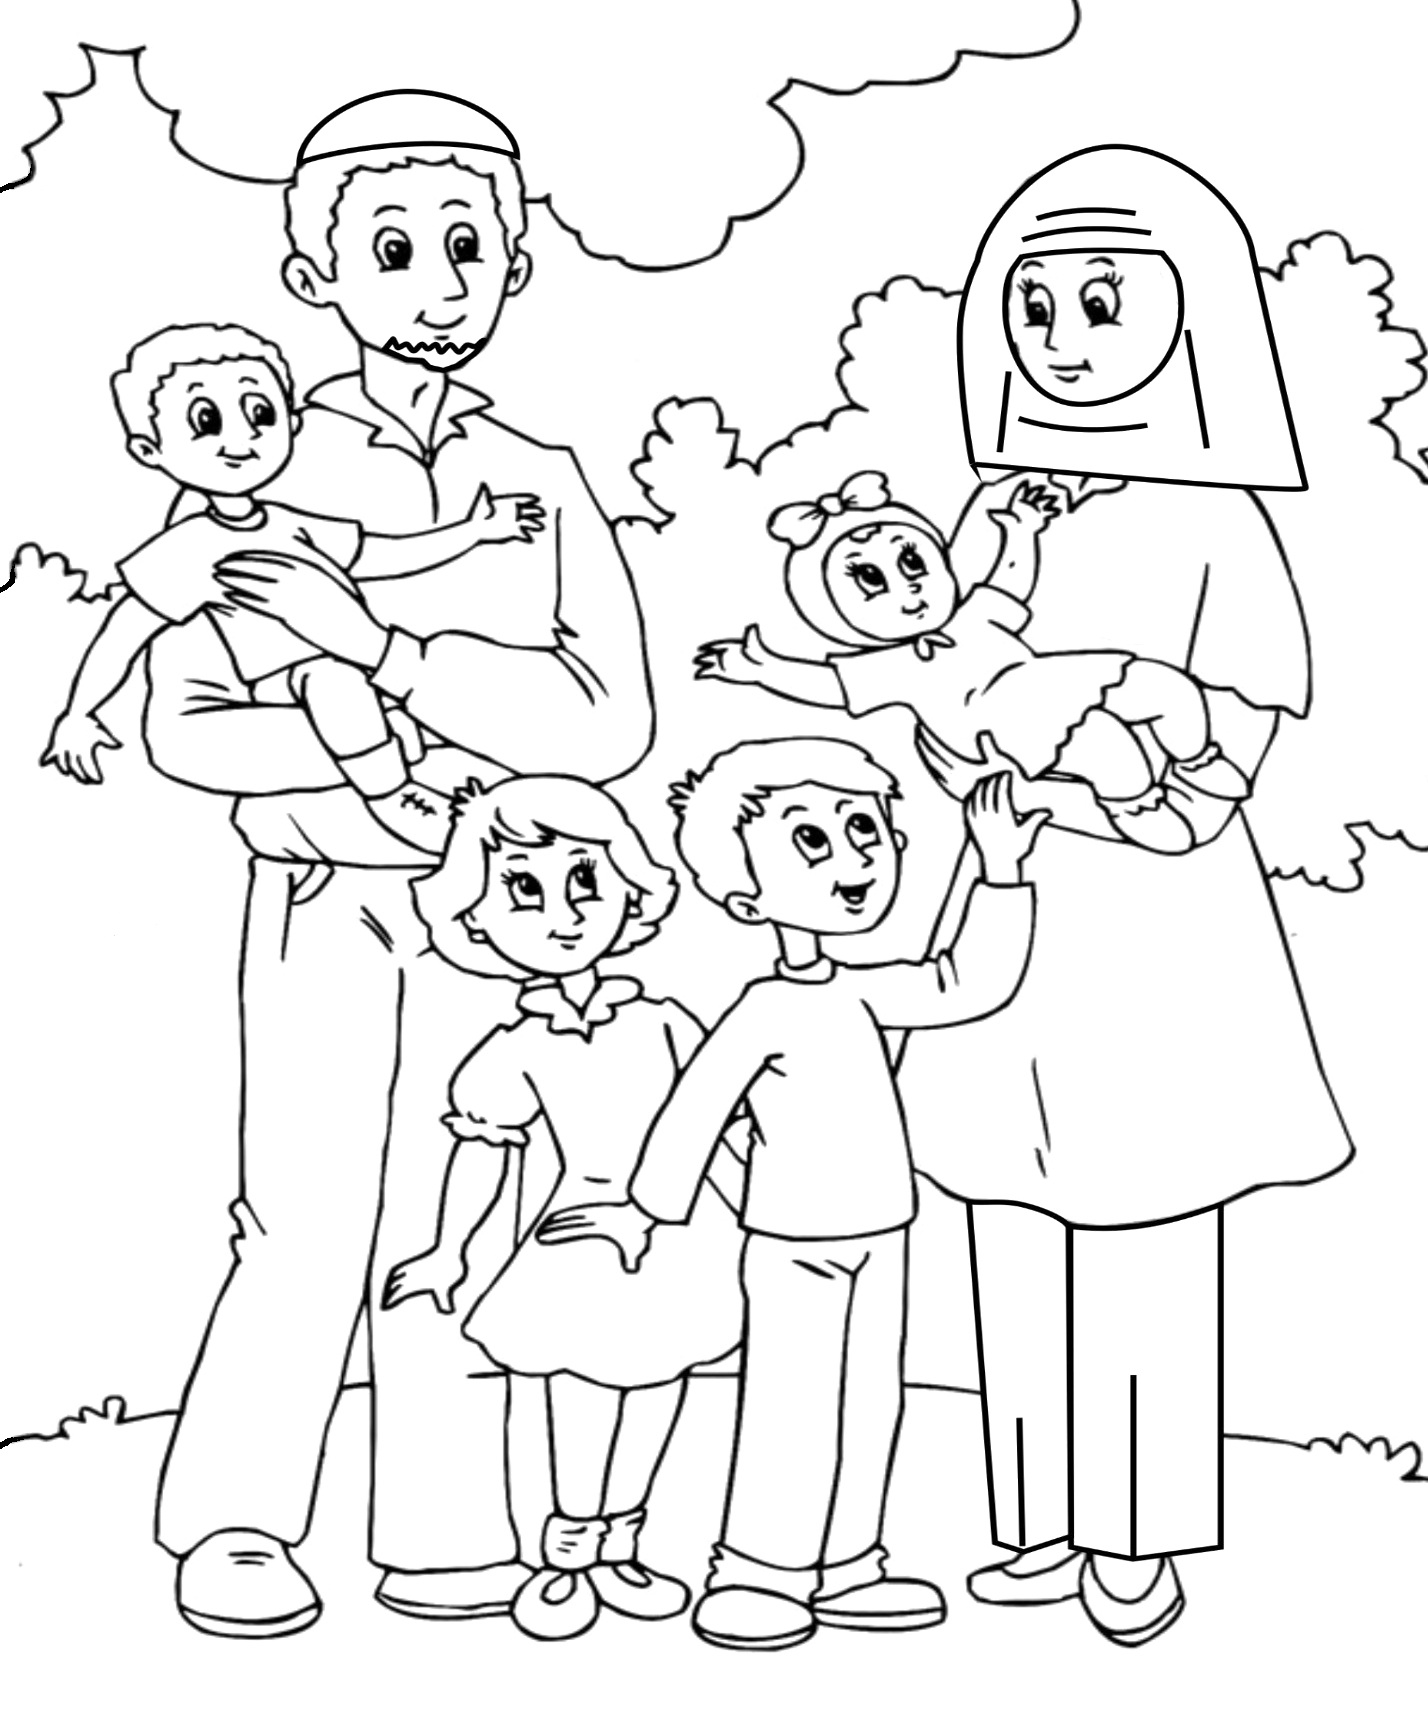 Me And My Family Drawing At Getdrawings